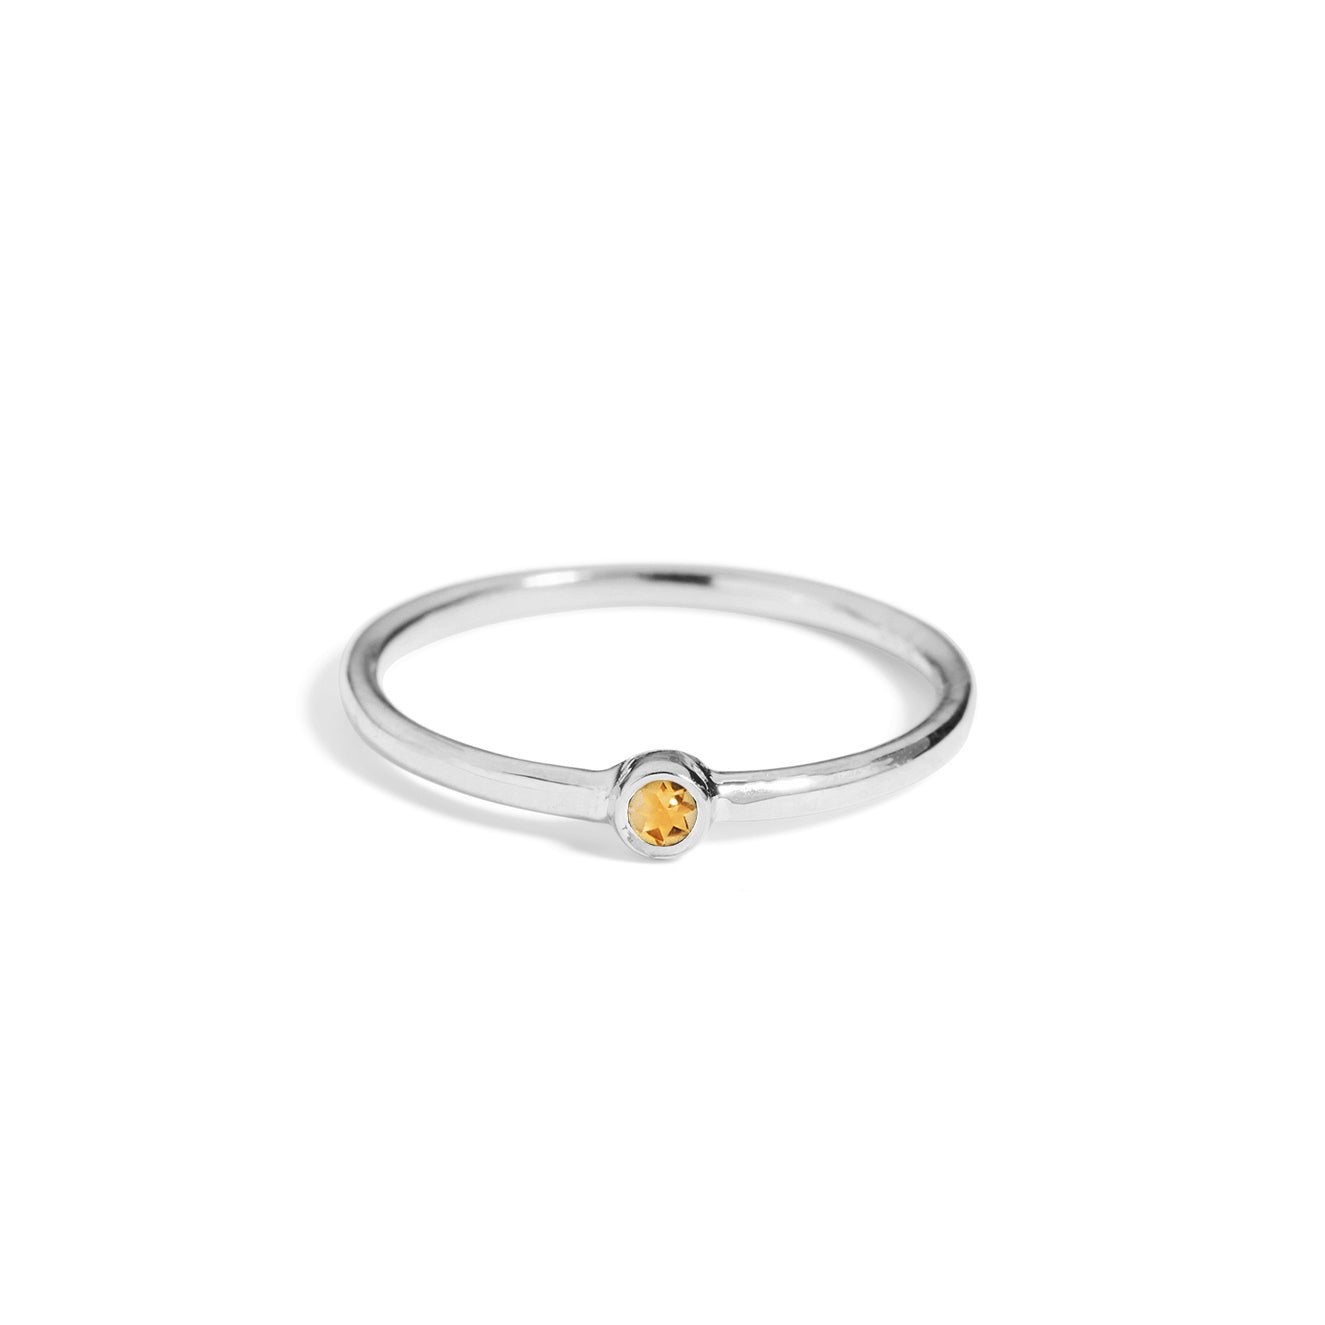 The Mini Citrine Stacker in Silver-Black Betty Jewellery Design, South Africa